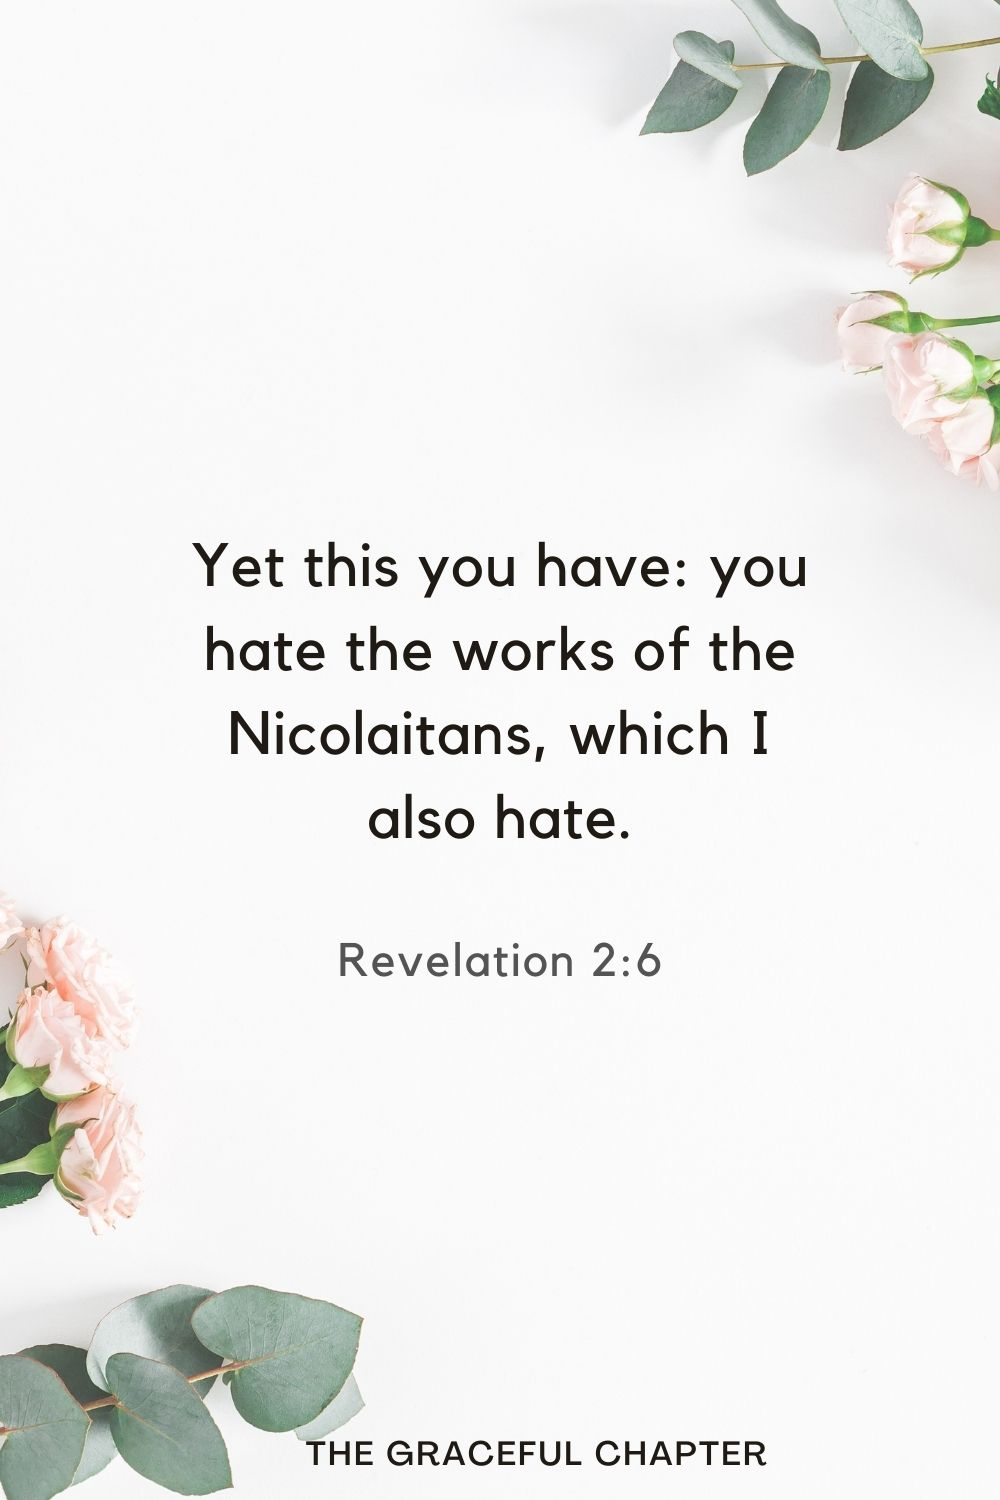 Yet this you have: you hate the works of the Nicolaitans, which I also hate. Revelation 2:6